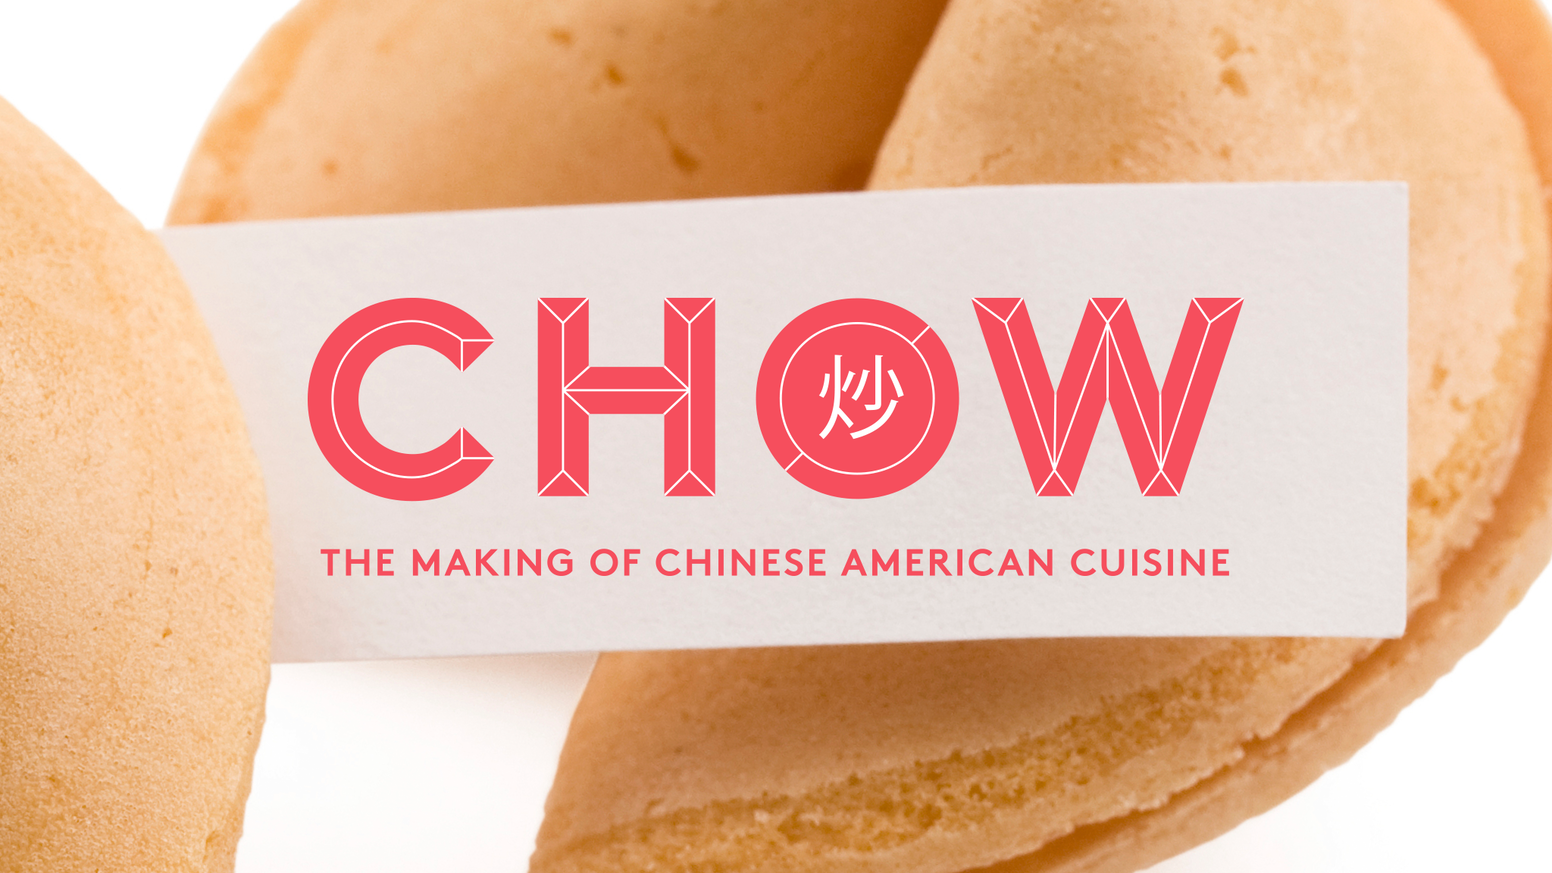 Chow the making of chinese american cuisine by museum of for Food s bar unloc